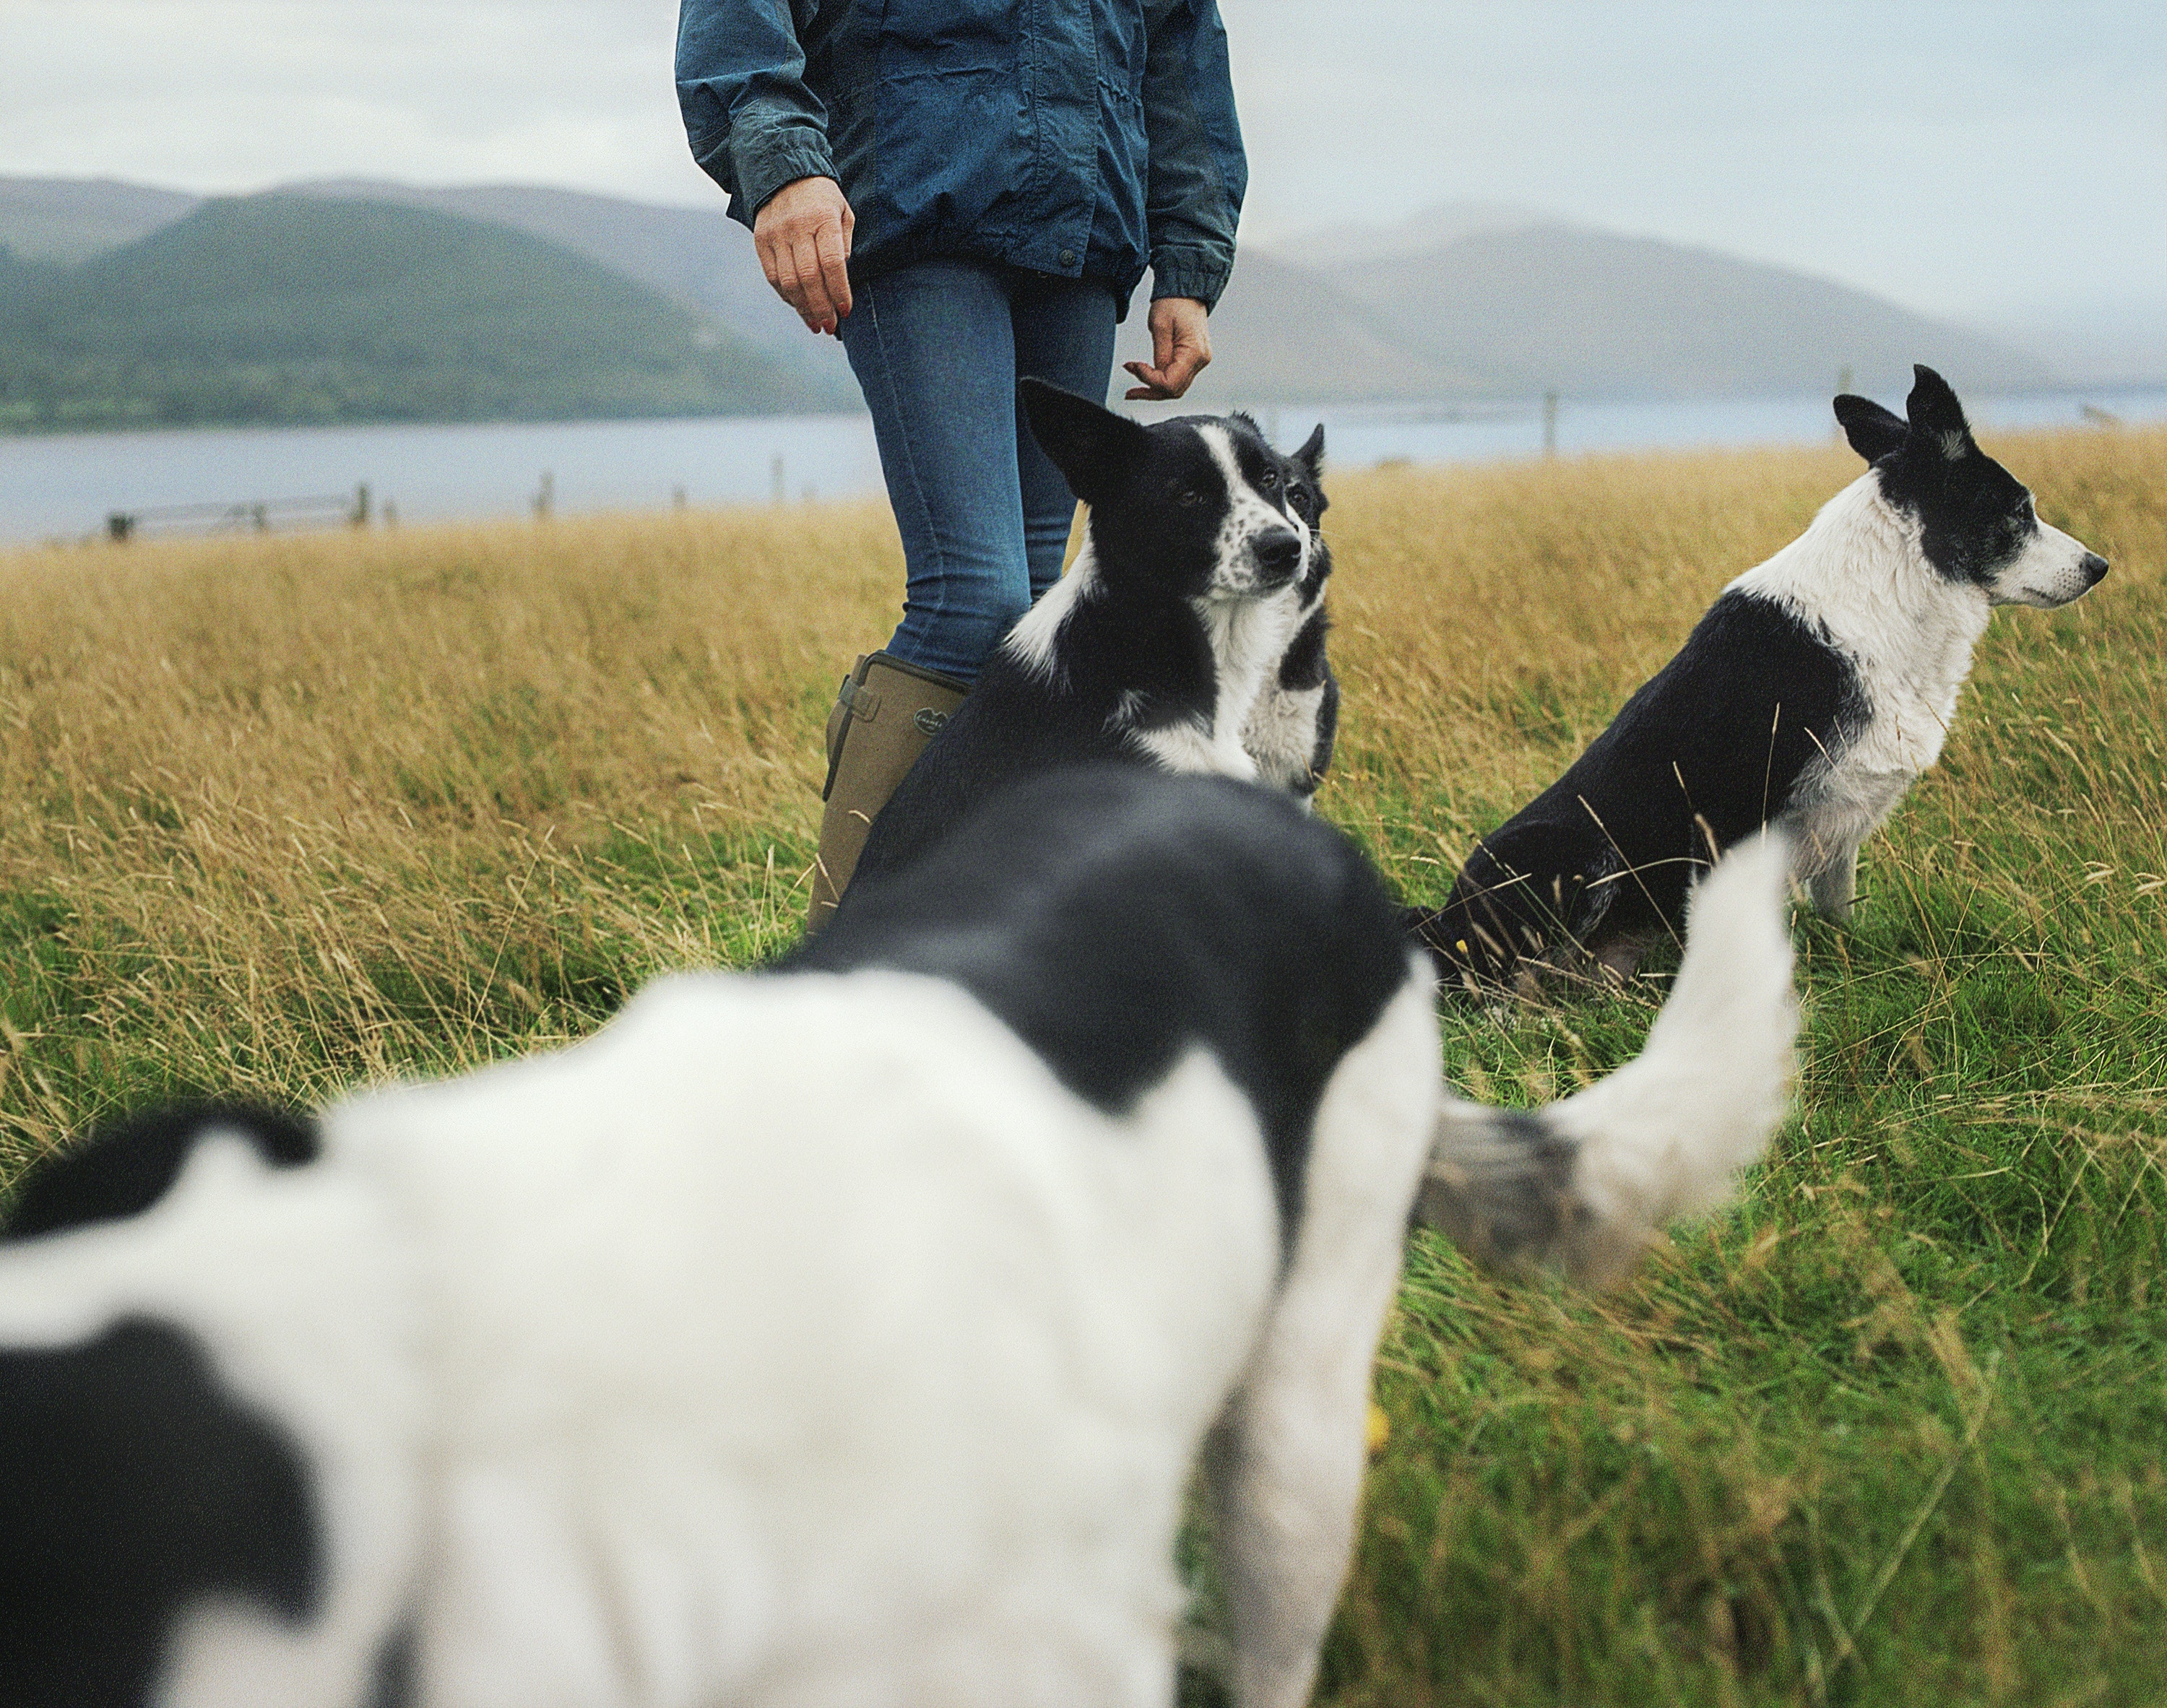 Collie dogs are a common sight on the route.